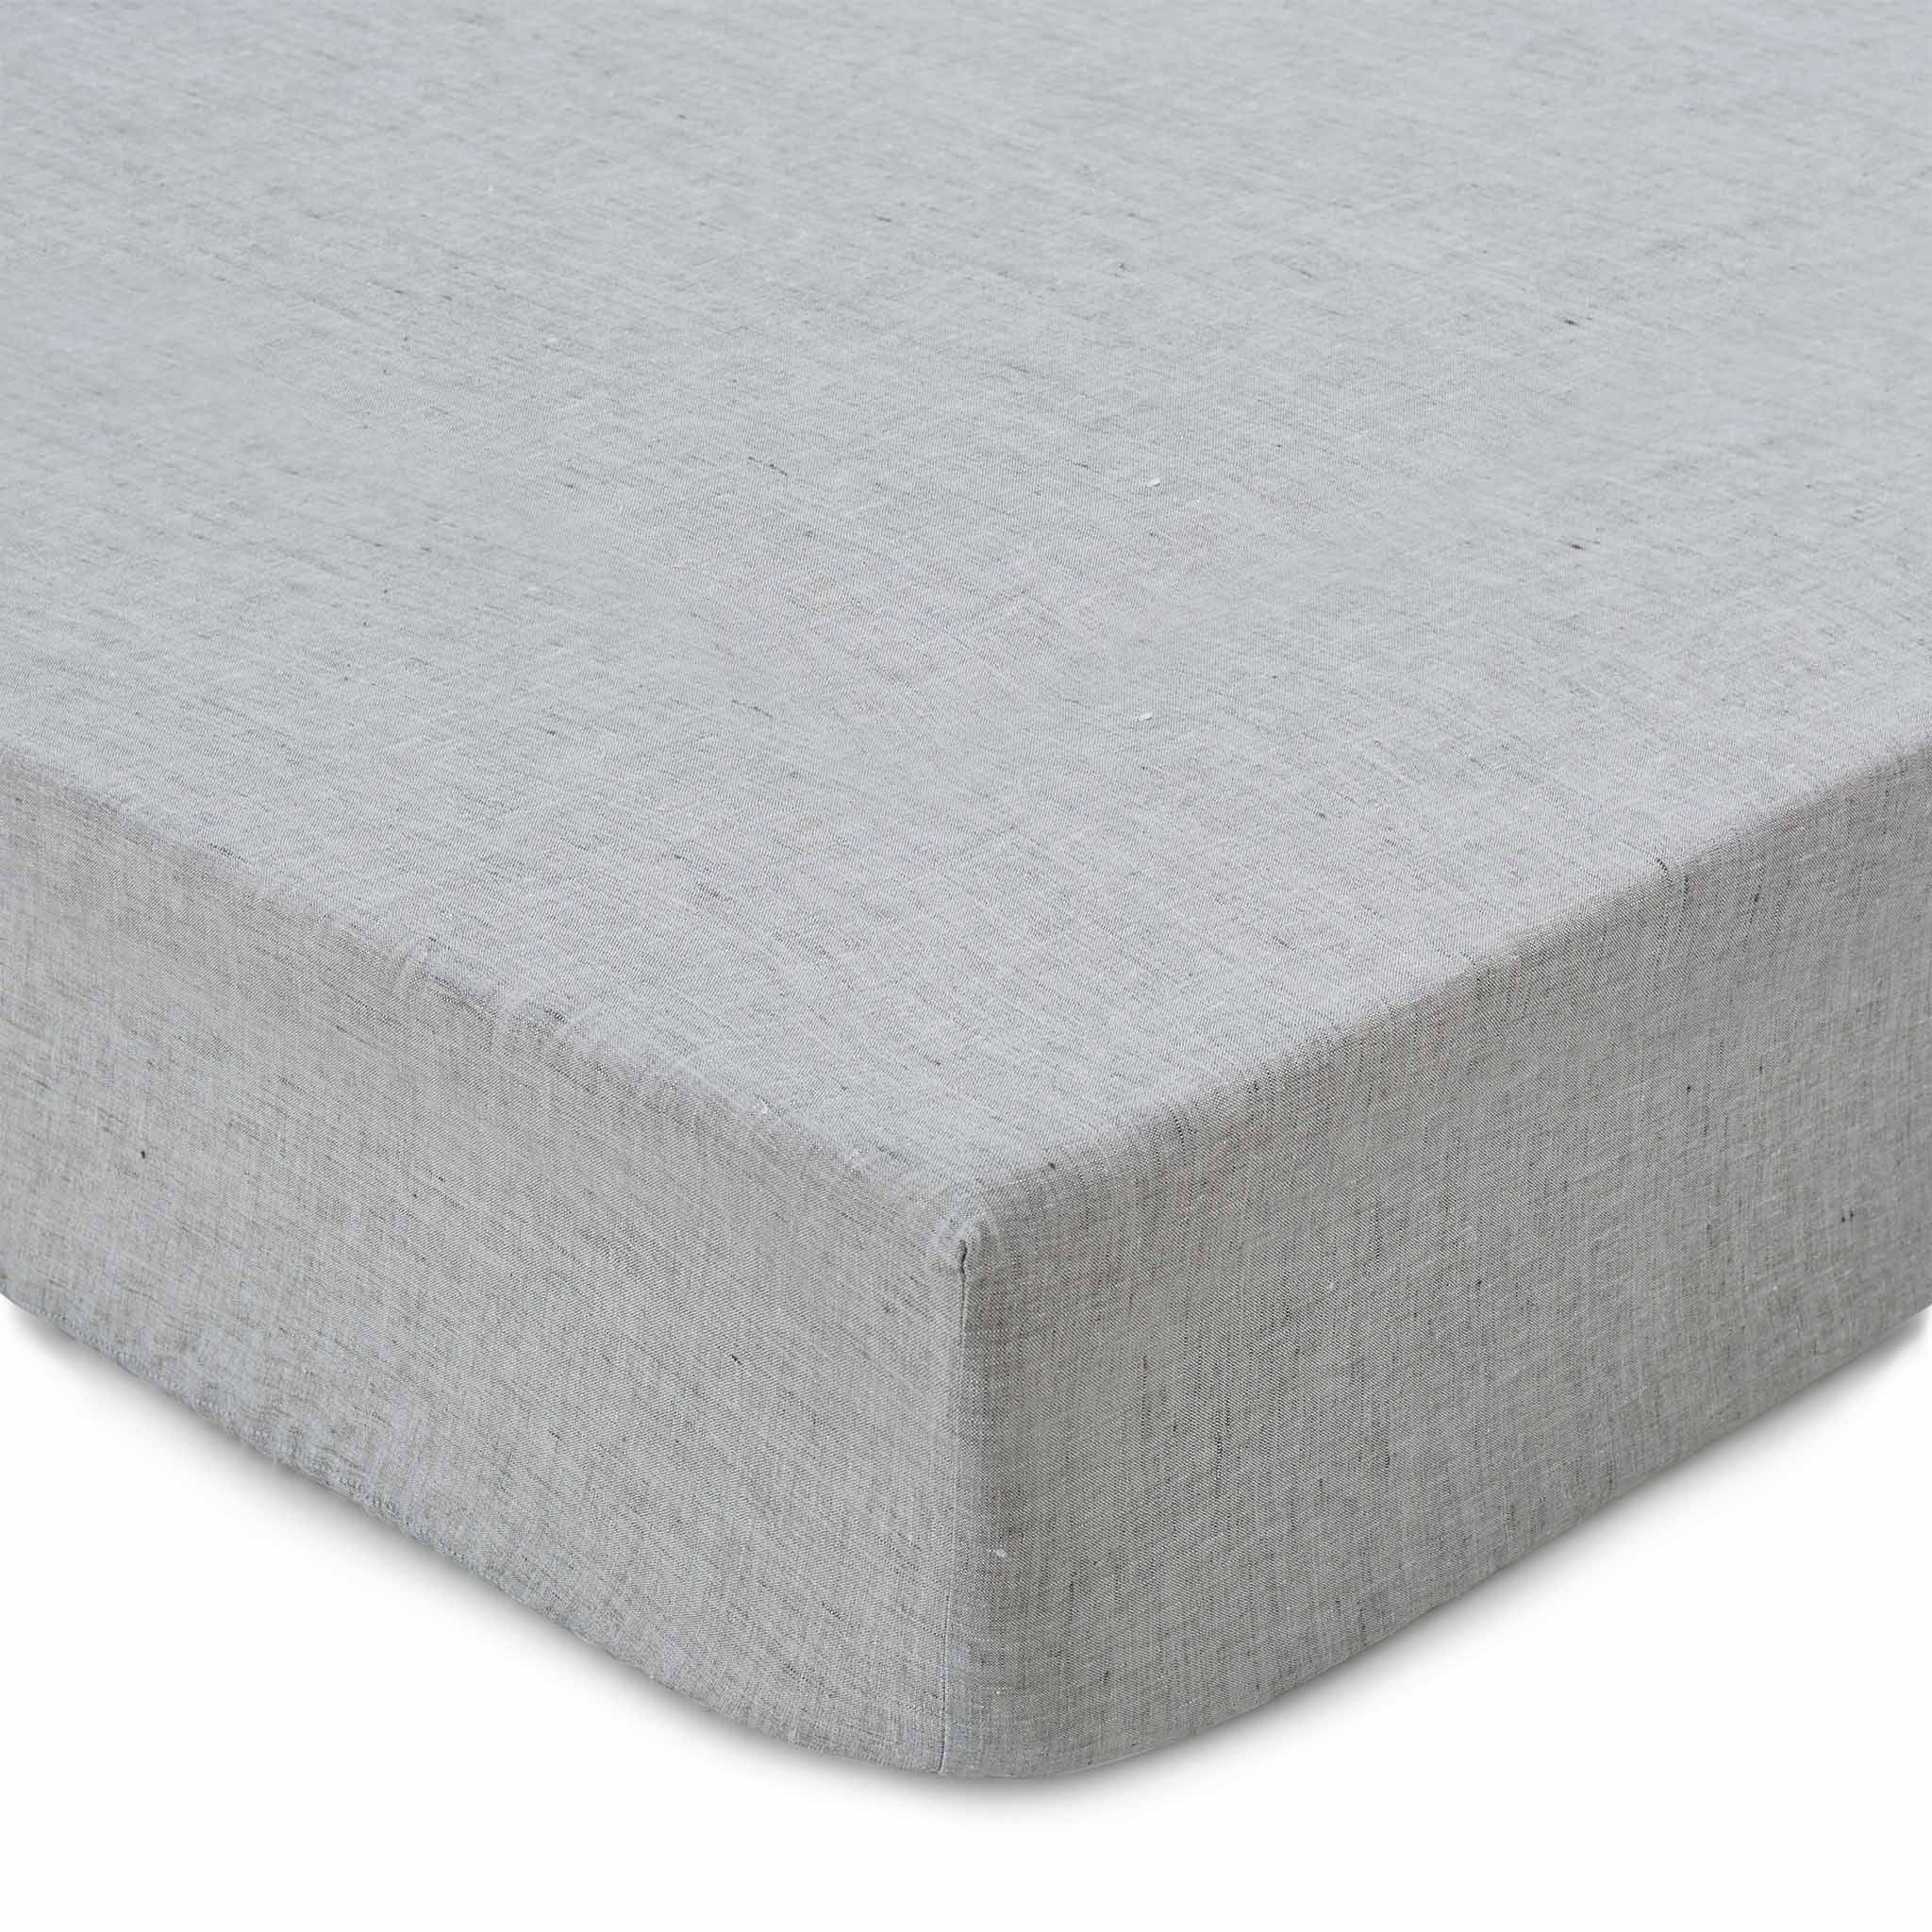 Sameiro fitted sheet, grey, 100% linen